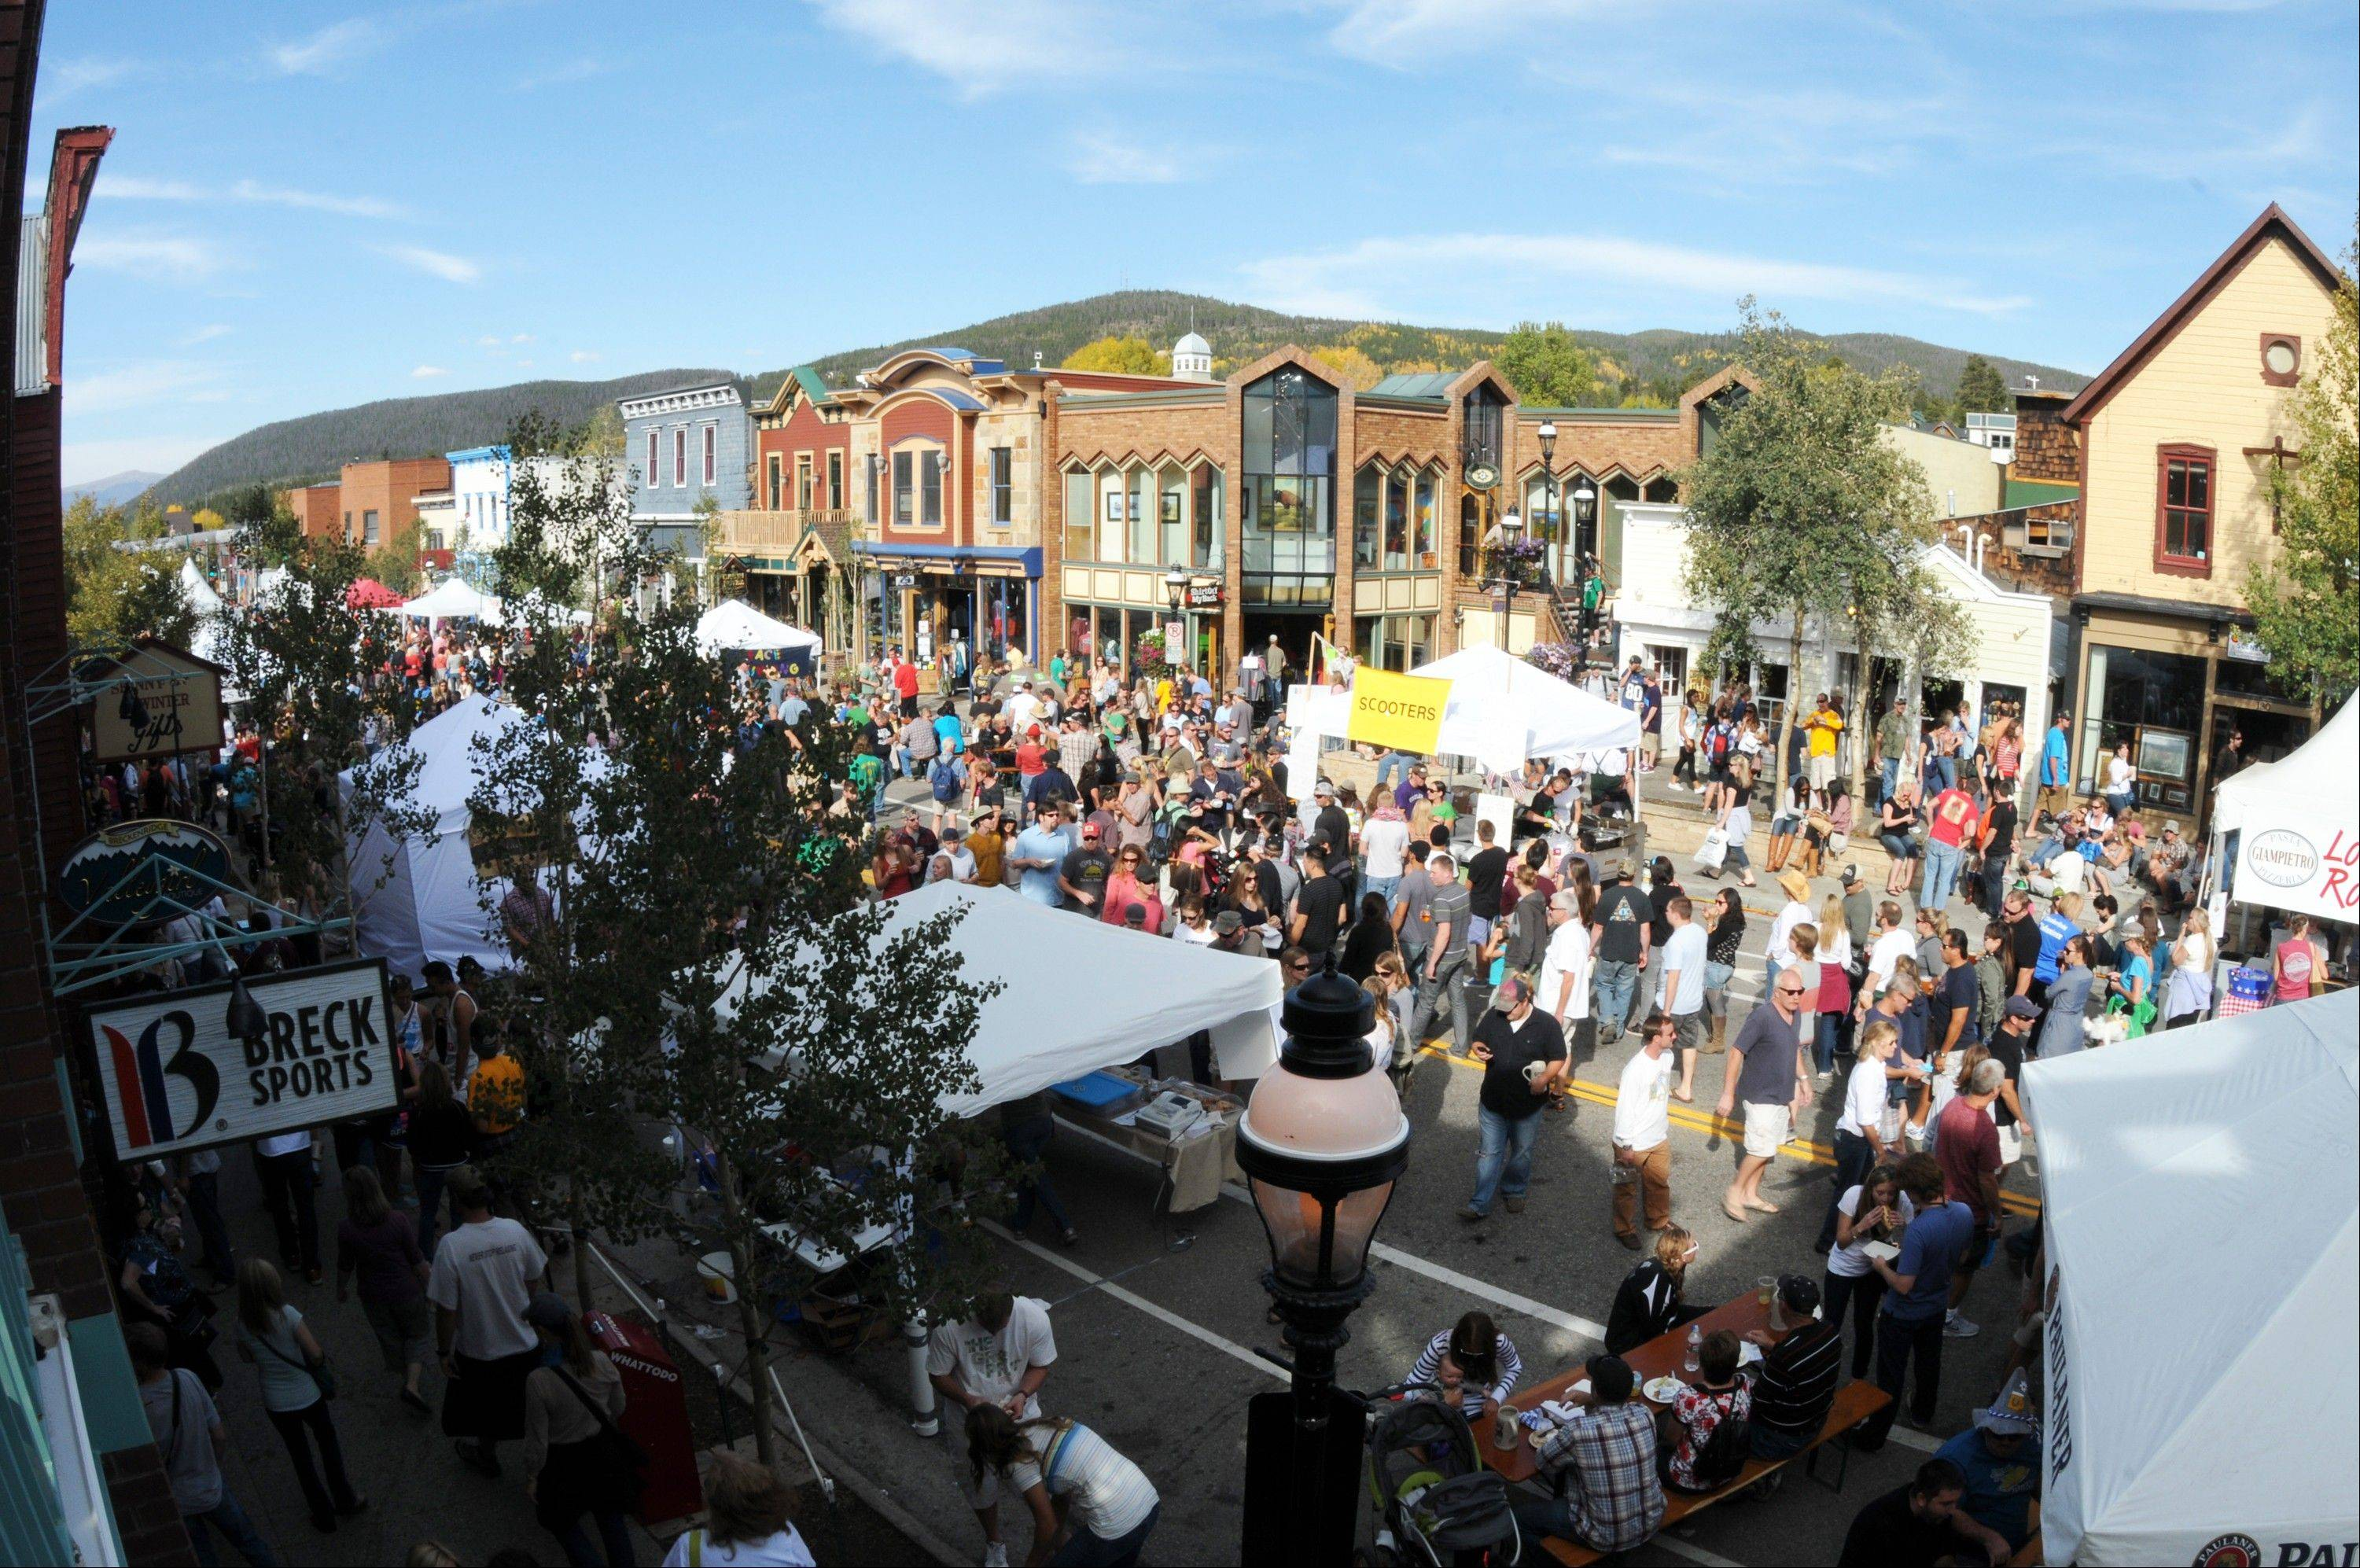 Crowds enjoy the annual Oktoberfest celebration in Breckenridge.